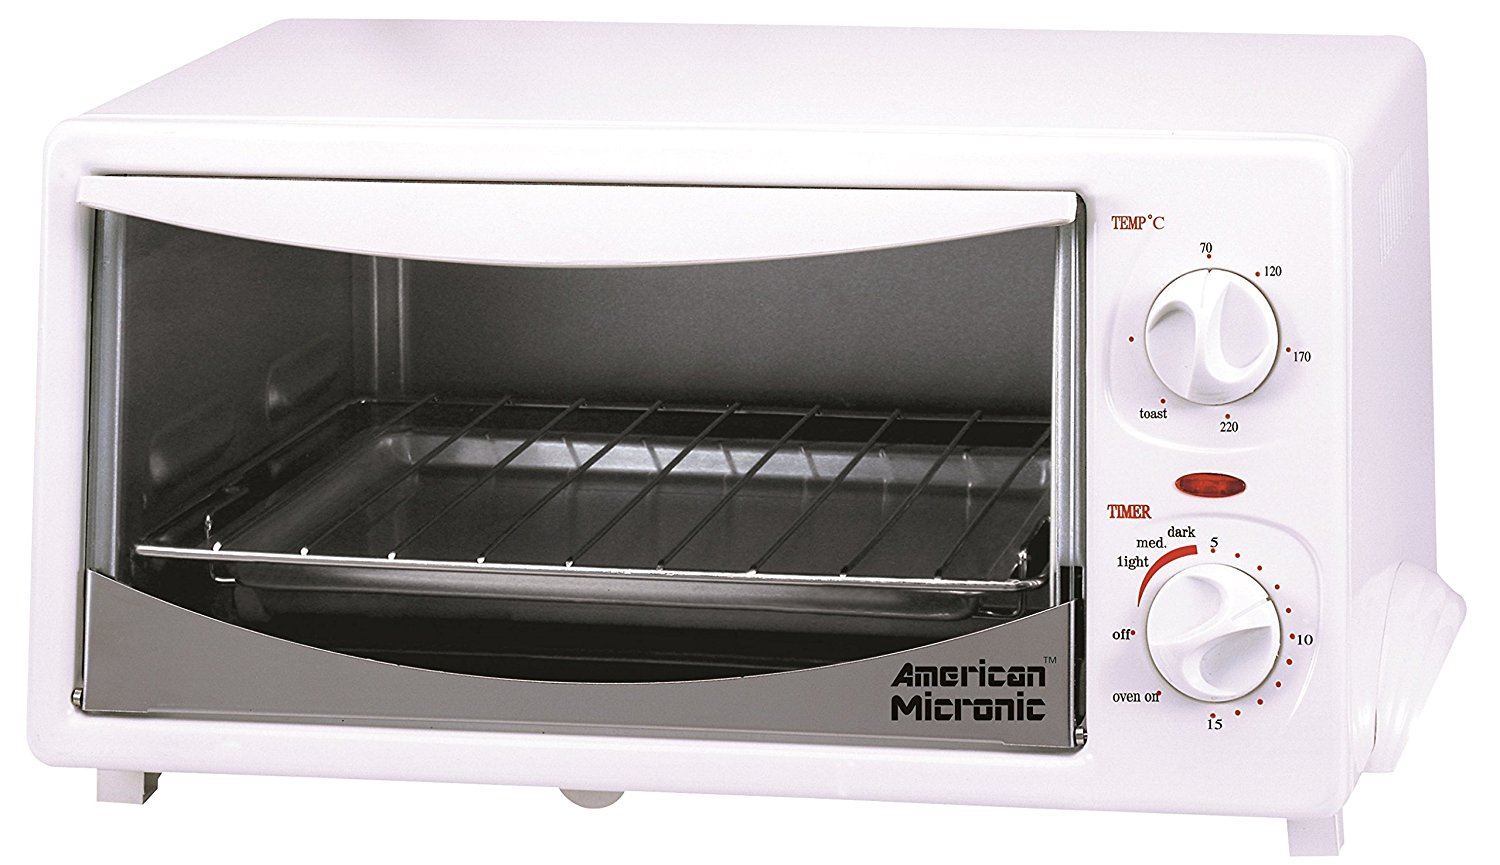 AMERICAN MICRONIC - 12 Liters Imported Oven Toaster Griller (OTG) with Timer & Variable temperature control. FREE Baking Tray & Wire Rack- AMI-OTG-12LDx